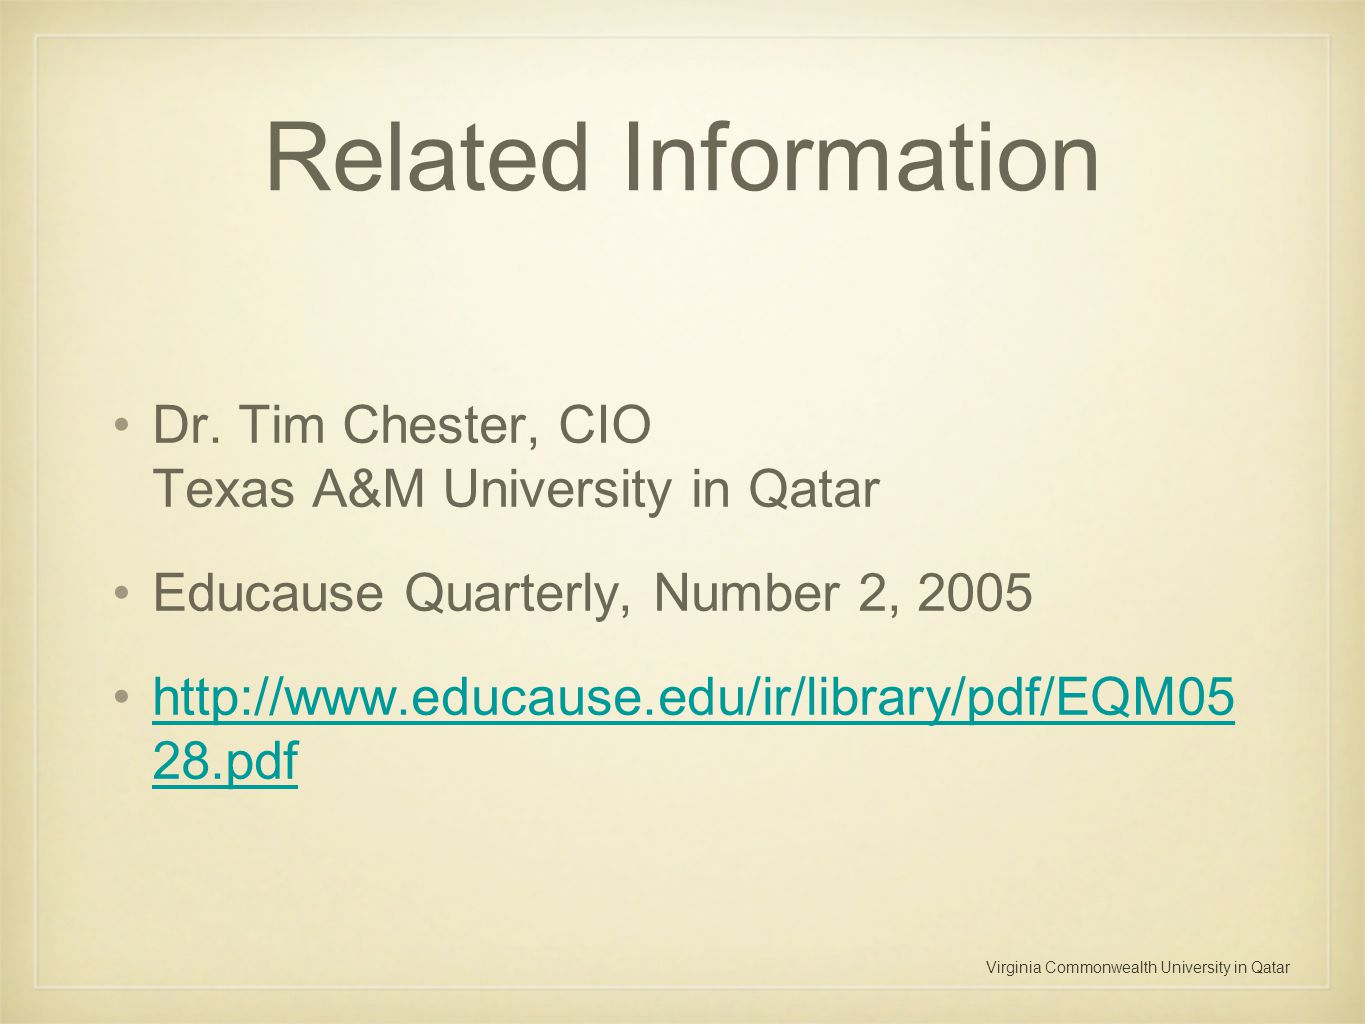 Virginia Commonwealth University in Qatar Related Information Dr. Tim Chester, CIO Texas A&M University in Qatar Educause Quarterly, Number 2, 2005 ht